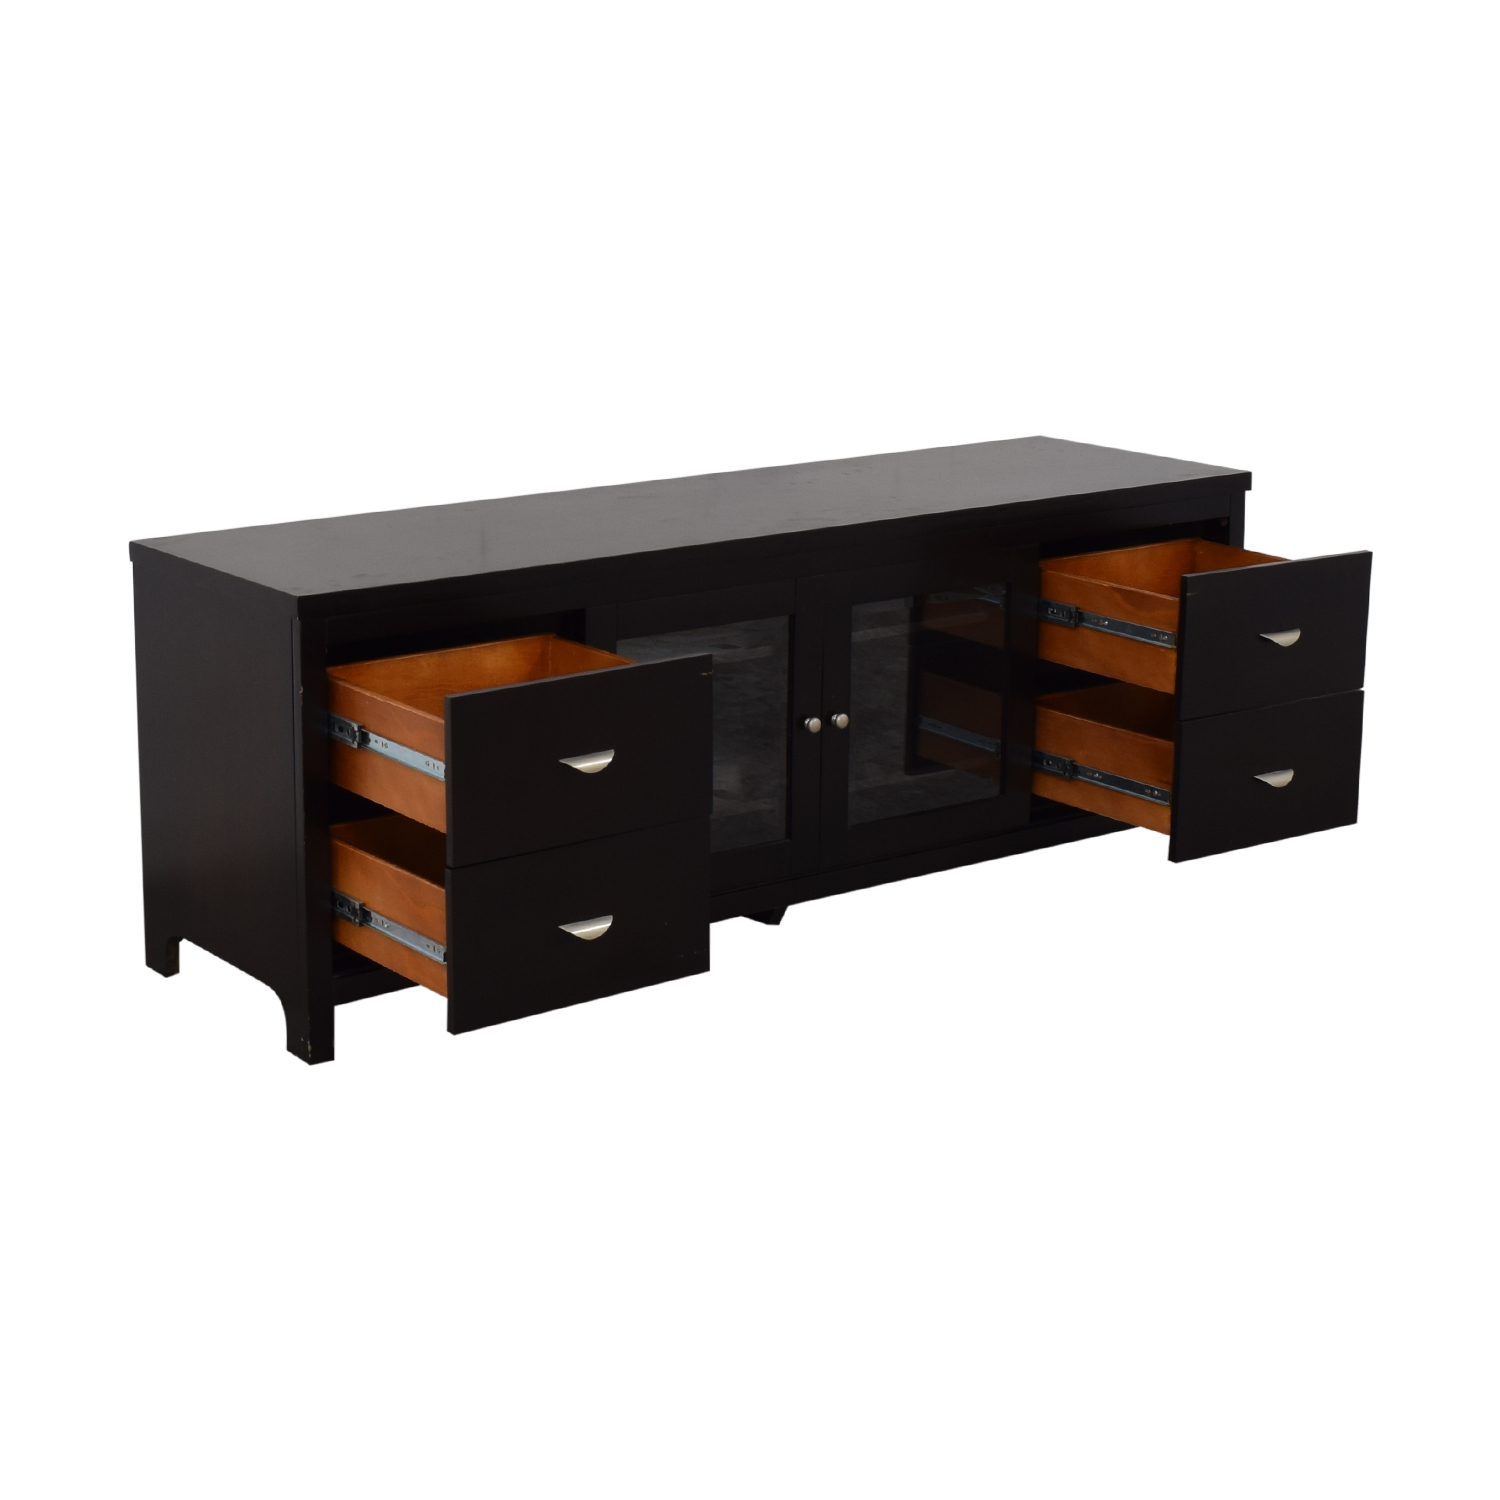 Abbyson Abbyson Clarkston Solid Wood Media Console